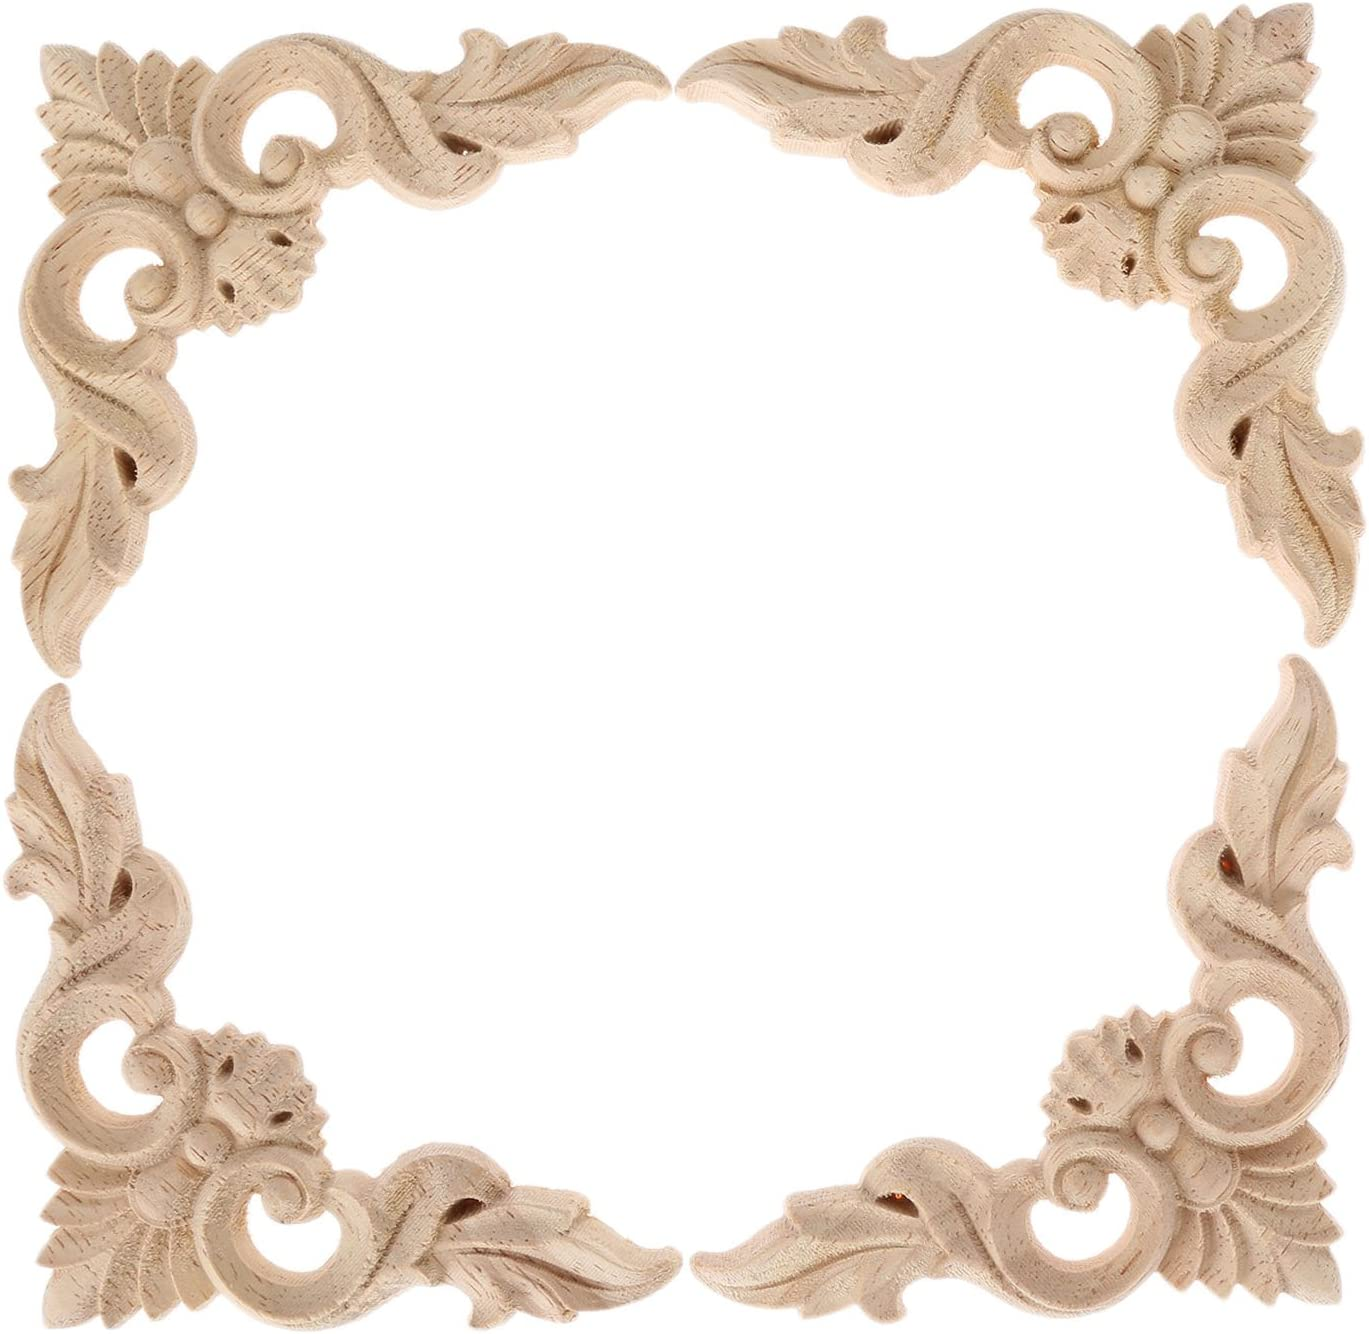 """MUXSAM 4PCS Wood Carved Applique Onlay for Furniture Decor Flower Decal Unpainted Durable Home Corner Frame Decoration (8x8cm/3.15""""x3.15"""")"""